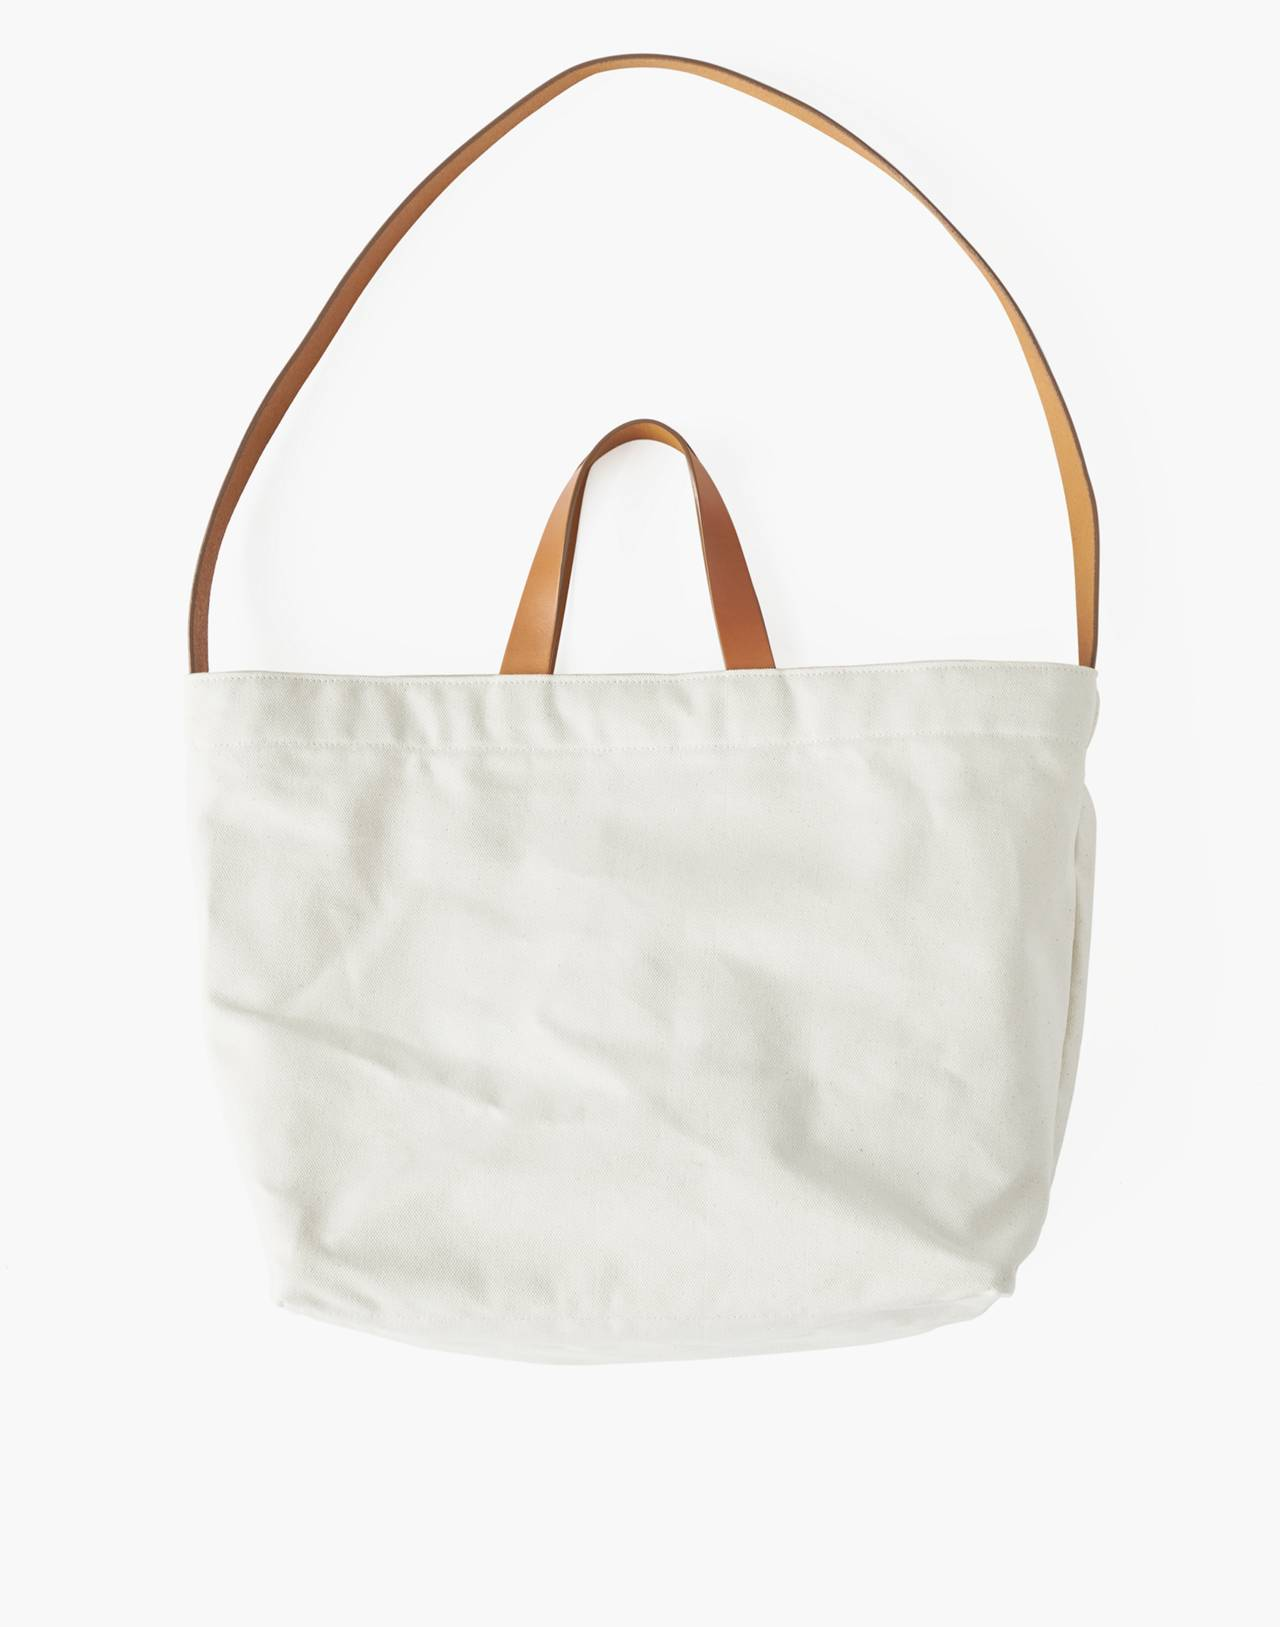 MAKR Canvas and Leather Sling Tote Bag in white image 1